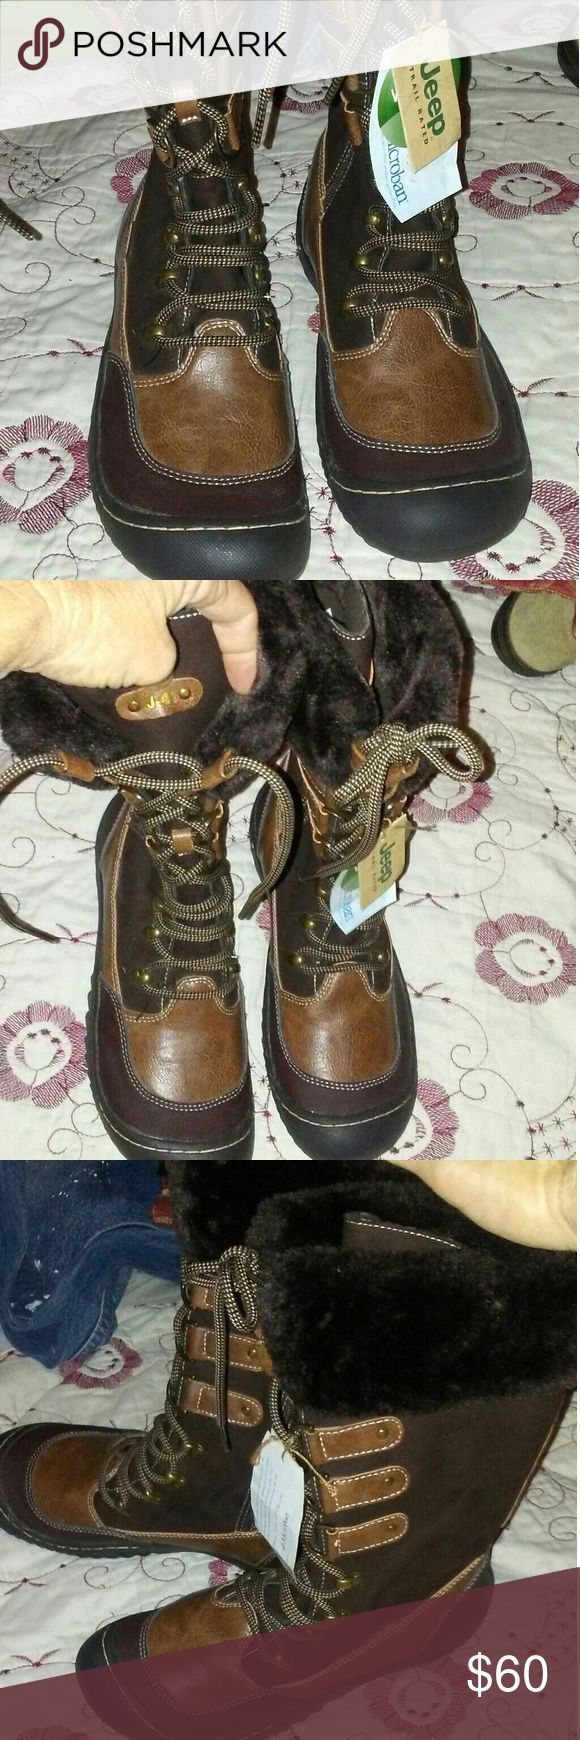 Jeeps Boots Size 8.5 Weather Ready Jeeps durable weather ready J41's size 8.5. Womens. Lace up with sturdy leather loops at top. Zipper on inner leg. Soft faux fur around inside n top. Rubber soles. Earth tones. New. Jeep Shoes Winter & Rain Boots